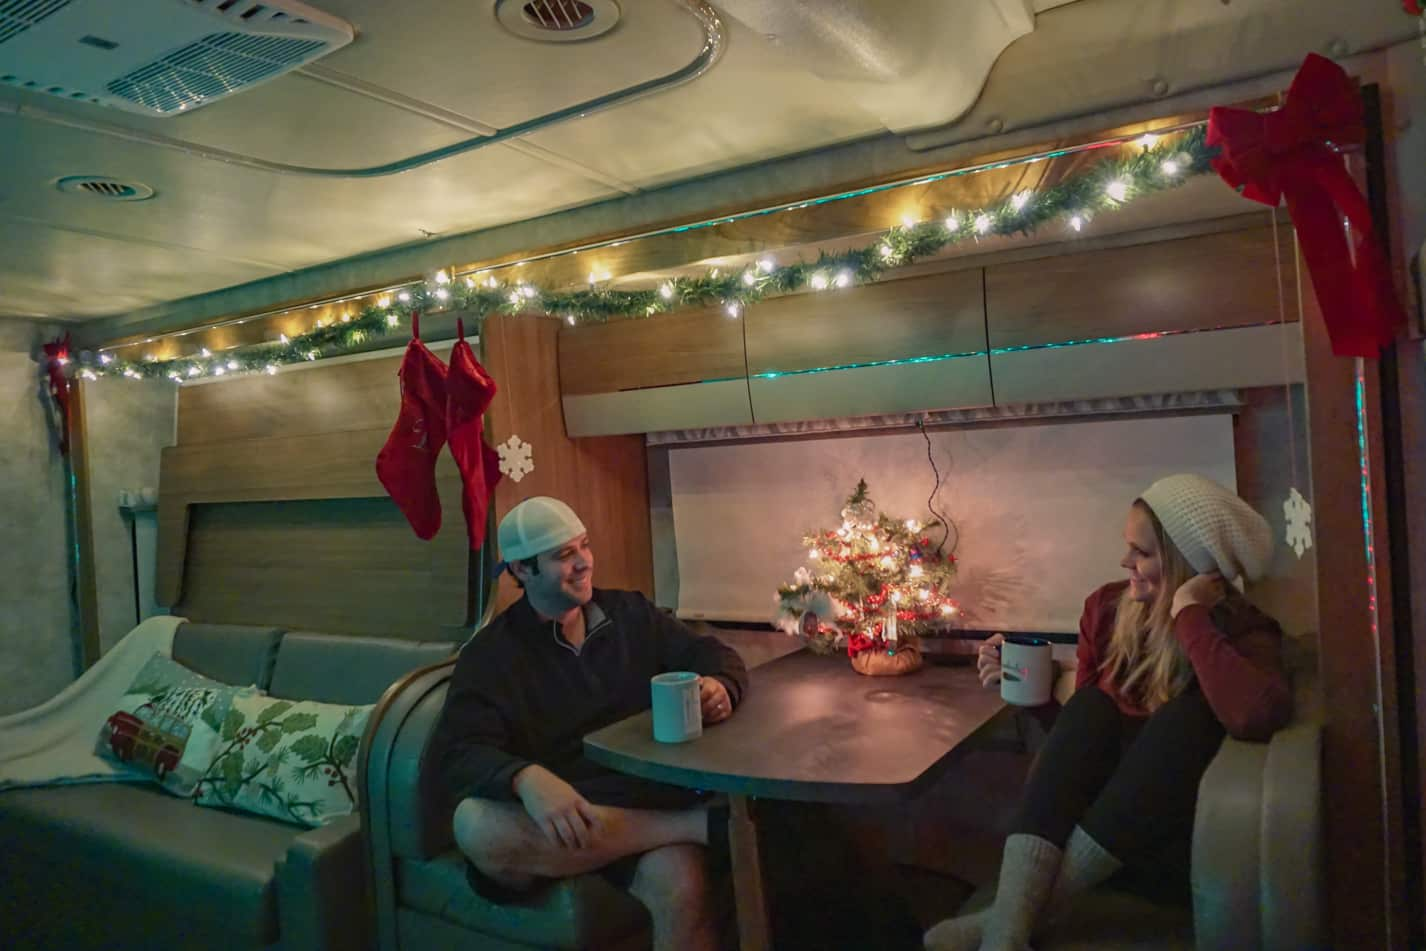 You Can Give A Great And Wonderful Christmas If You: Simple & Affordable Tips For Decorating An RV For